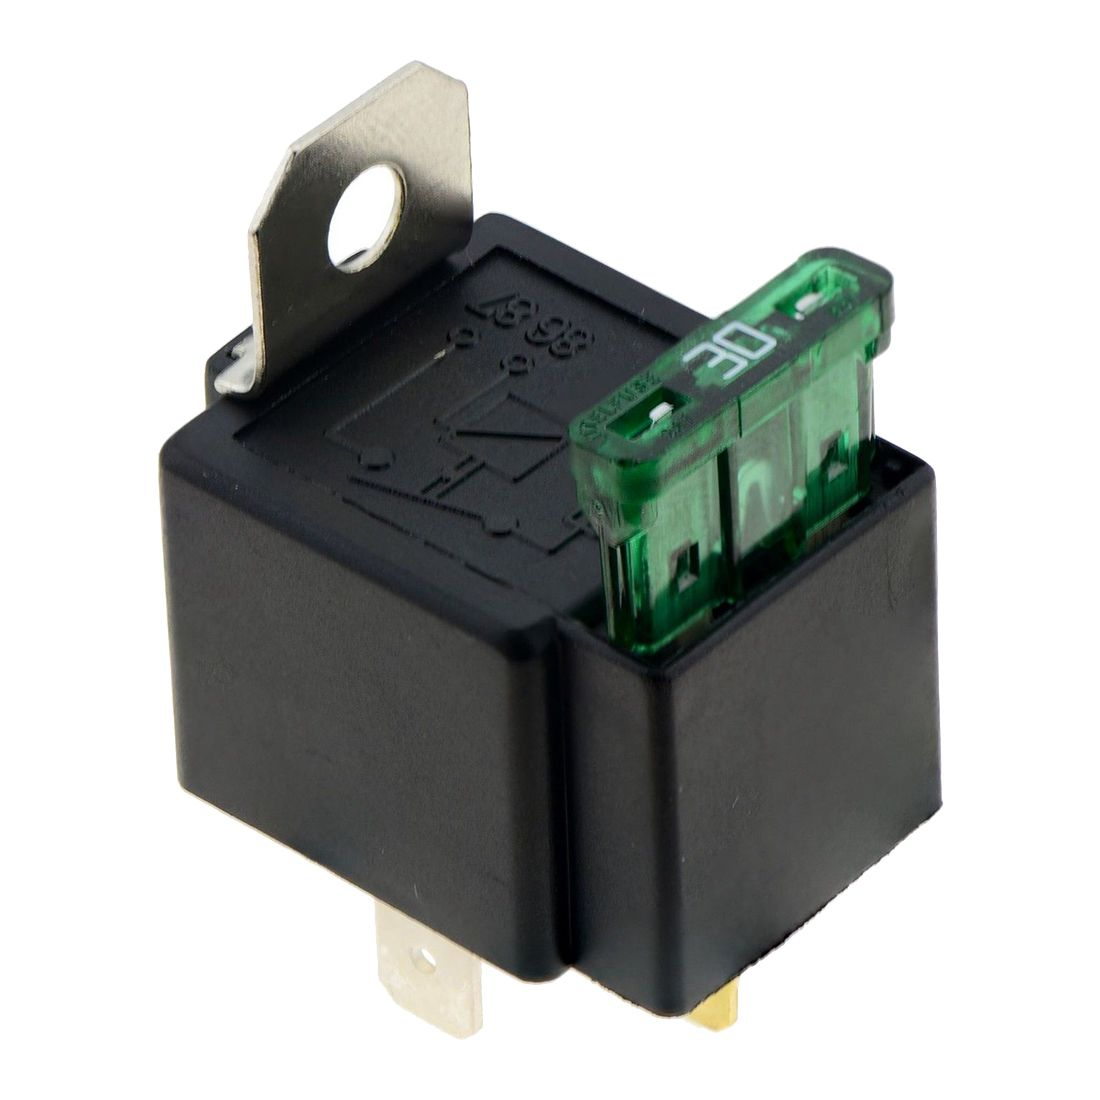 цена на THGS Fused On/Off Automotive Fused Relay 12V 30A 4-Pin Normally Open Car Bike,black